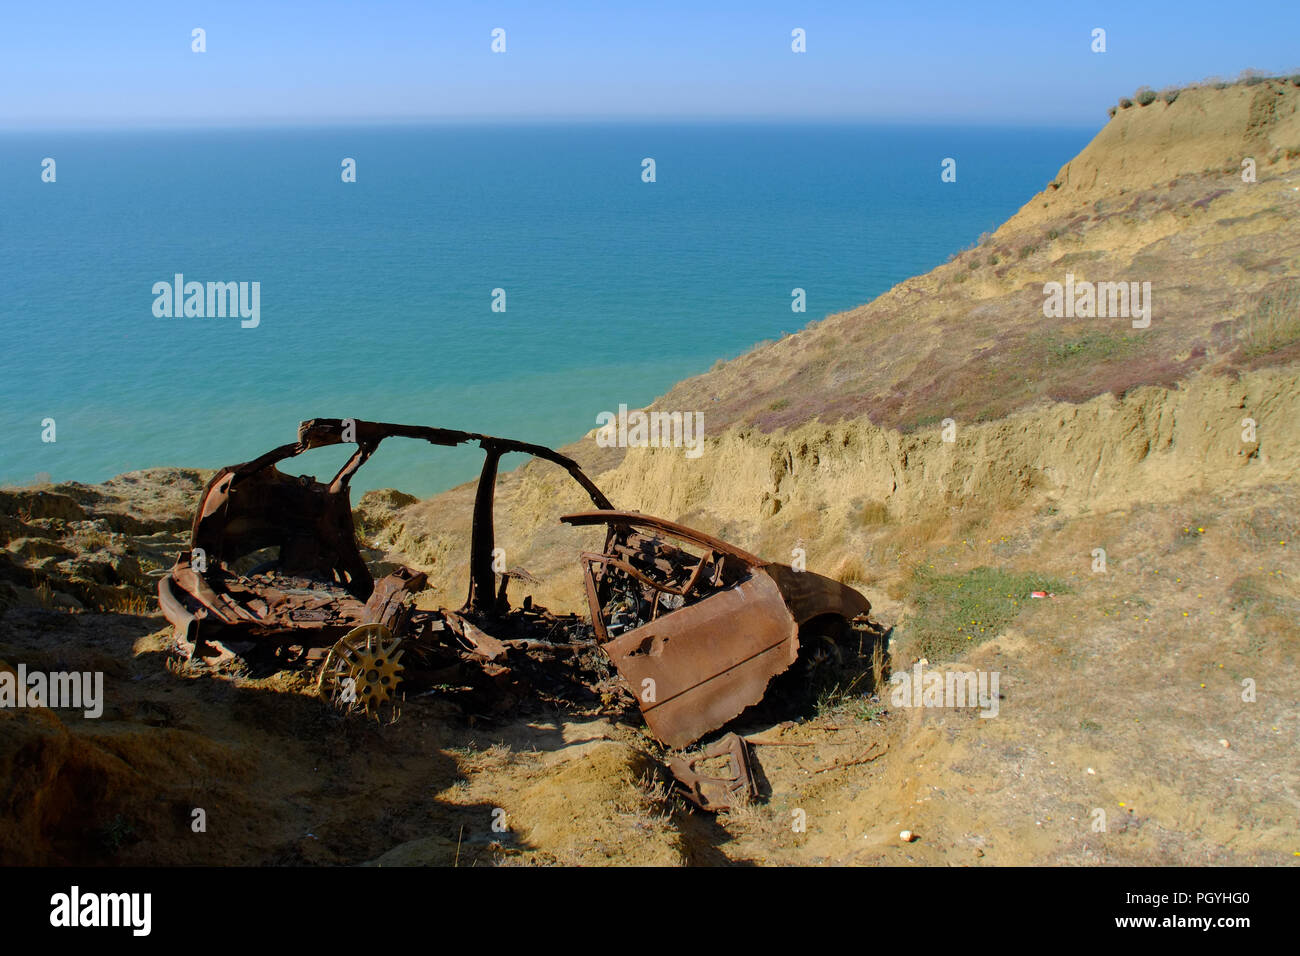 Wreck of a burned out car on the chalk cliffs above the sea near Newhaven, East Sussex, UK - Stock Image